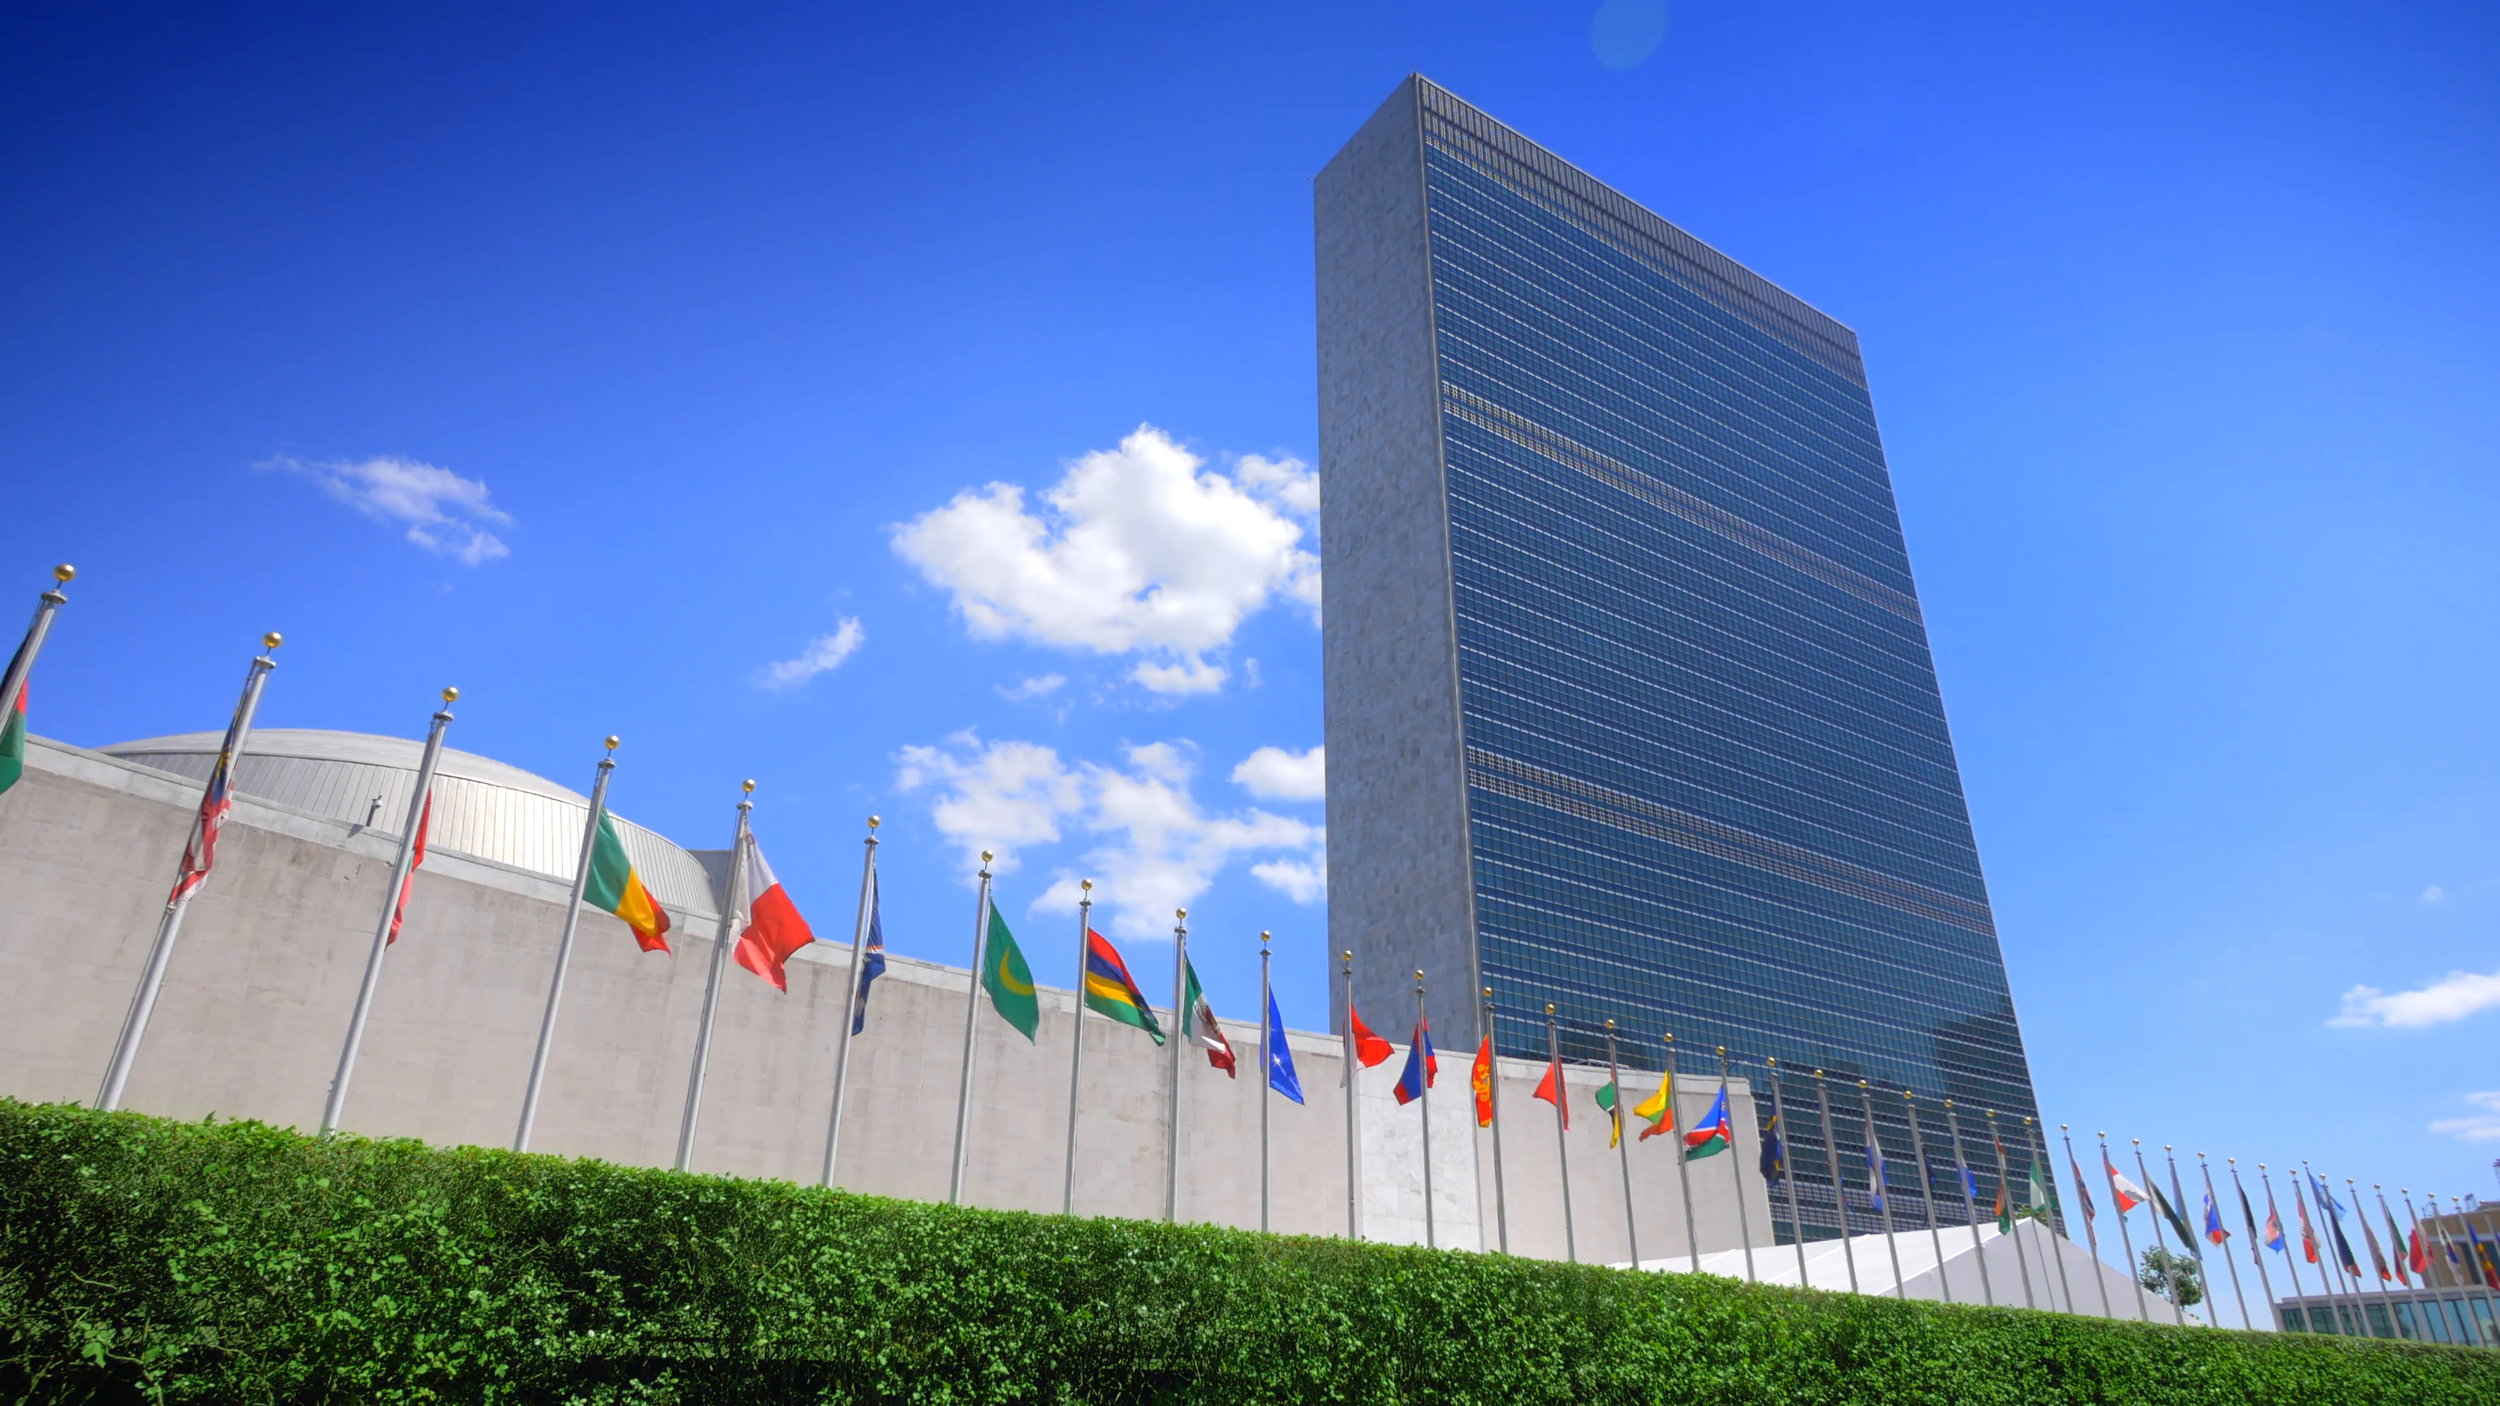 nyc-united-nations-building-headquarters-in-new-york-city-and-flags-of-the-members-countries_vykmtlhn__F0000.png